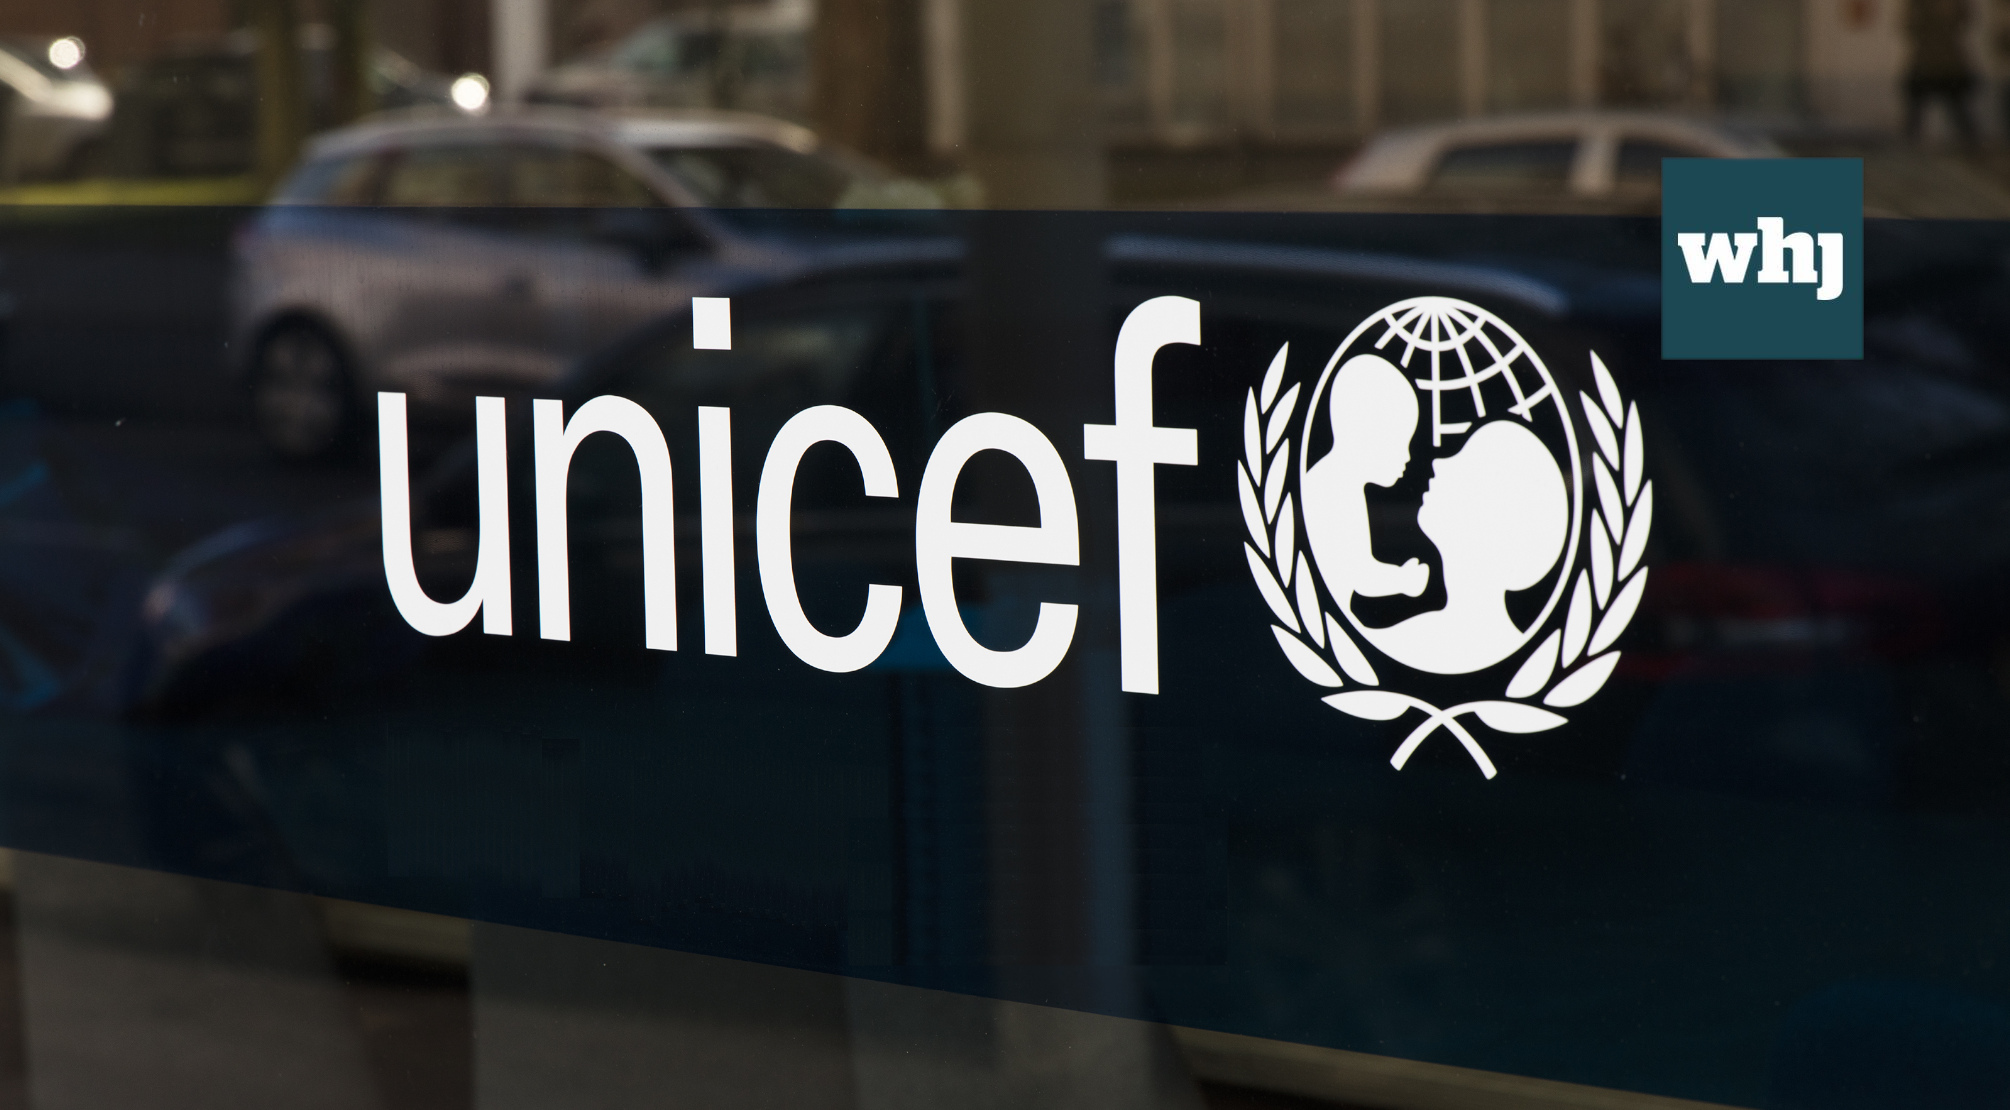 UNICEF and WHO order urgent call to action for polio and measles outbreaks